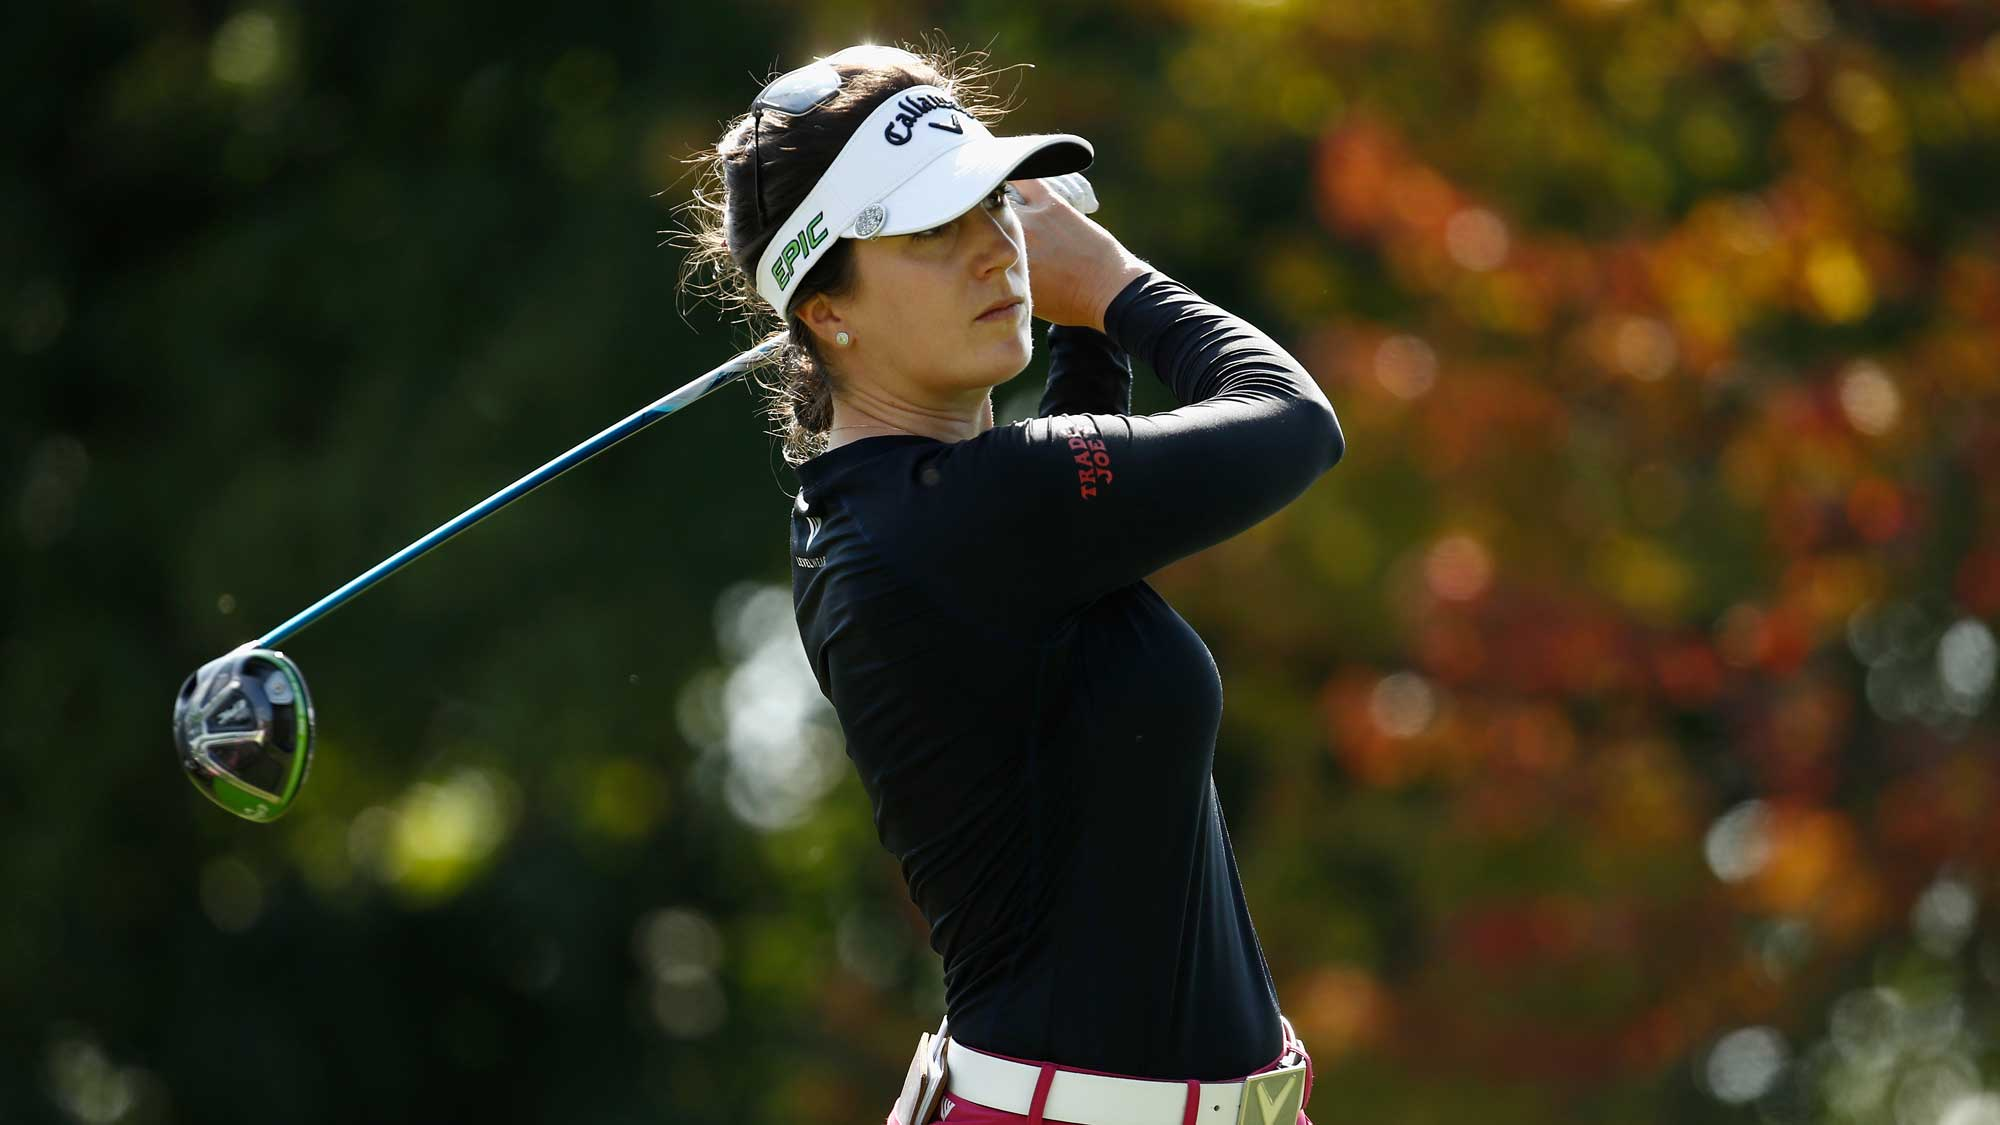 Sandra Gal of Germany hits her tee shot on the 9th hole during the second round of the Indy Women In Tech Championship-Presented By Guggenheim